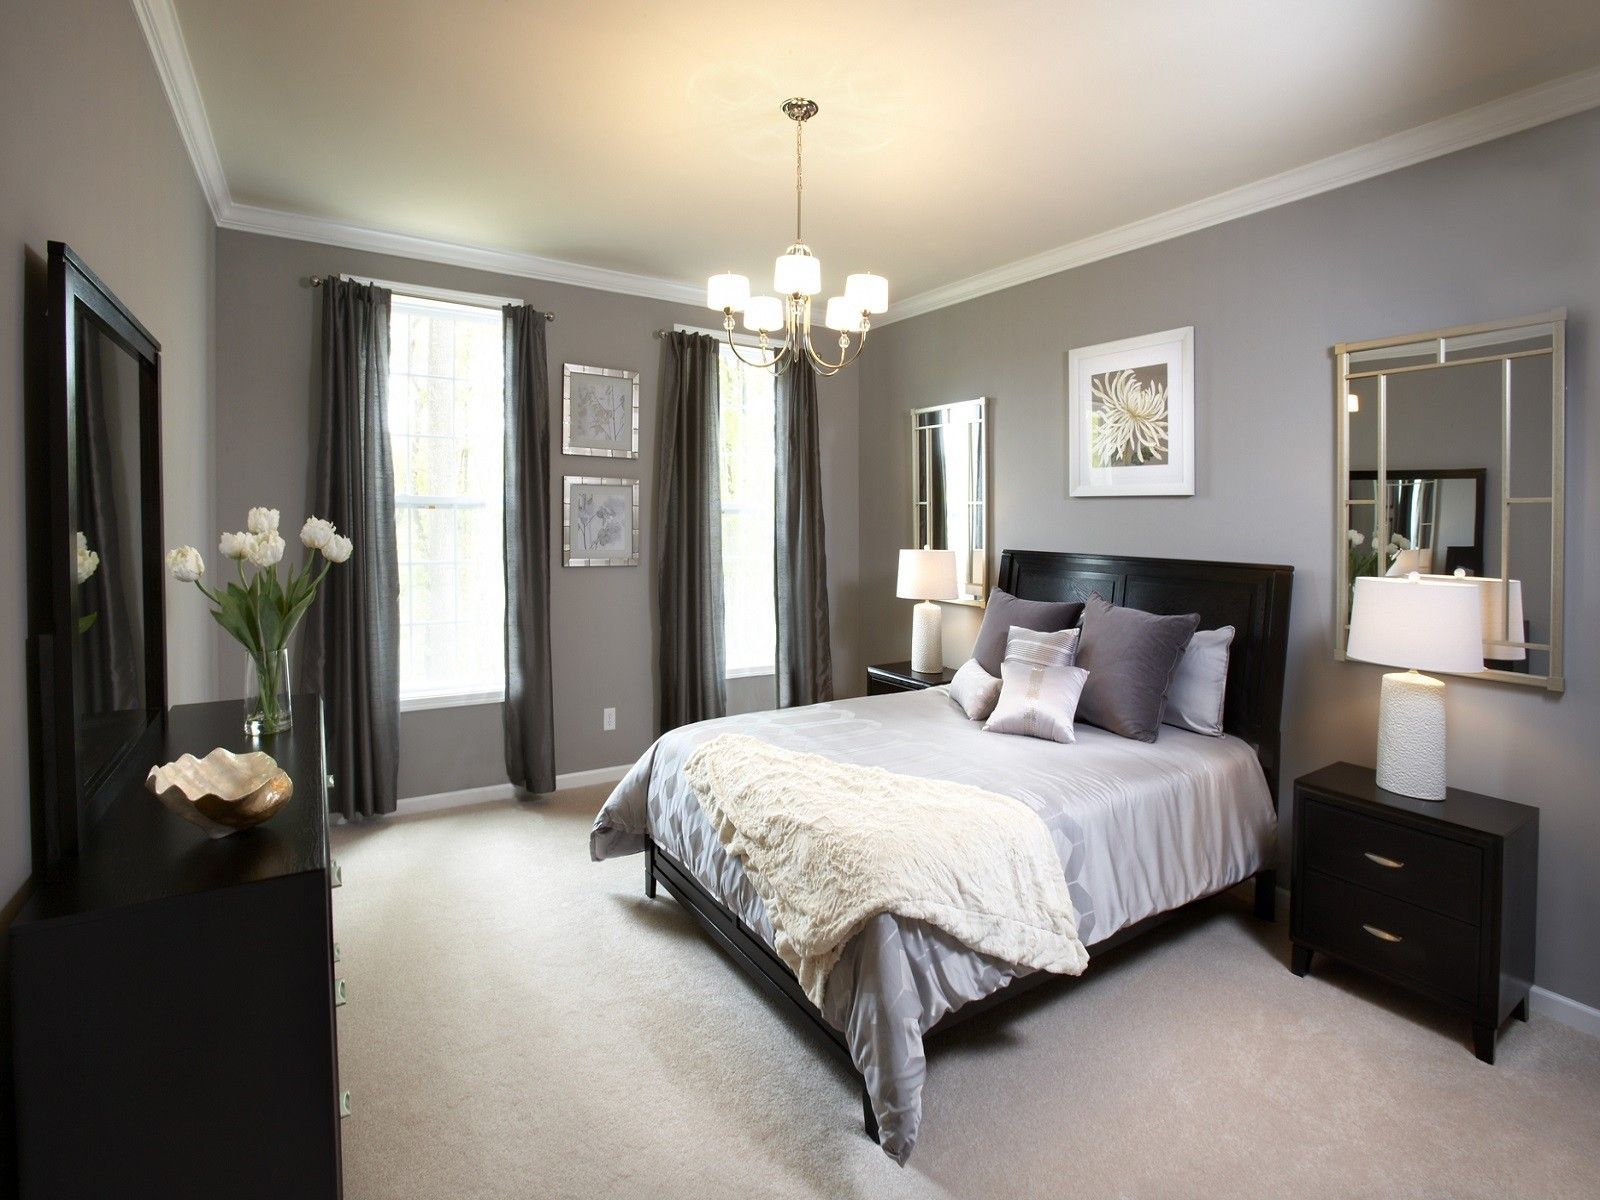 black bedroom ideas inspiration for master bedroom designs. beautiful ideas. Home Design Ideas